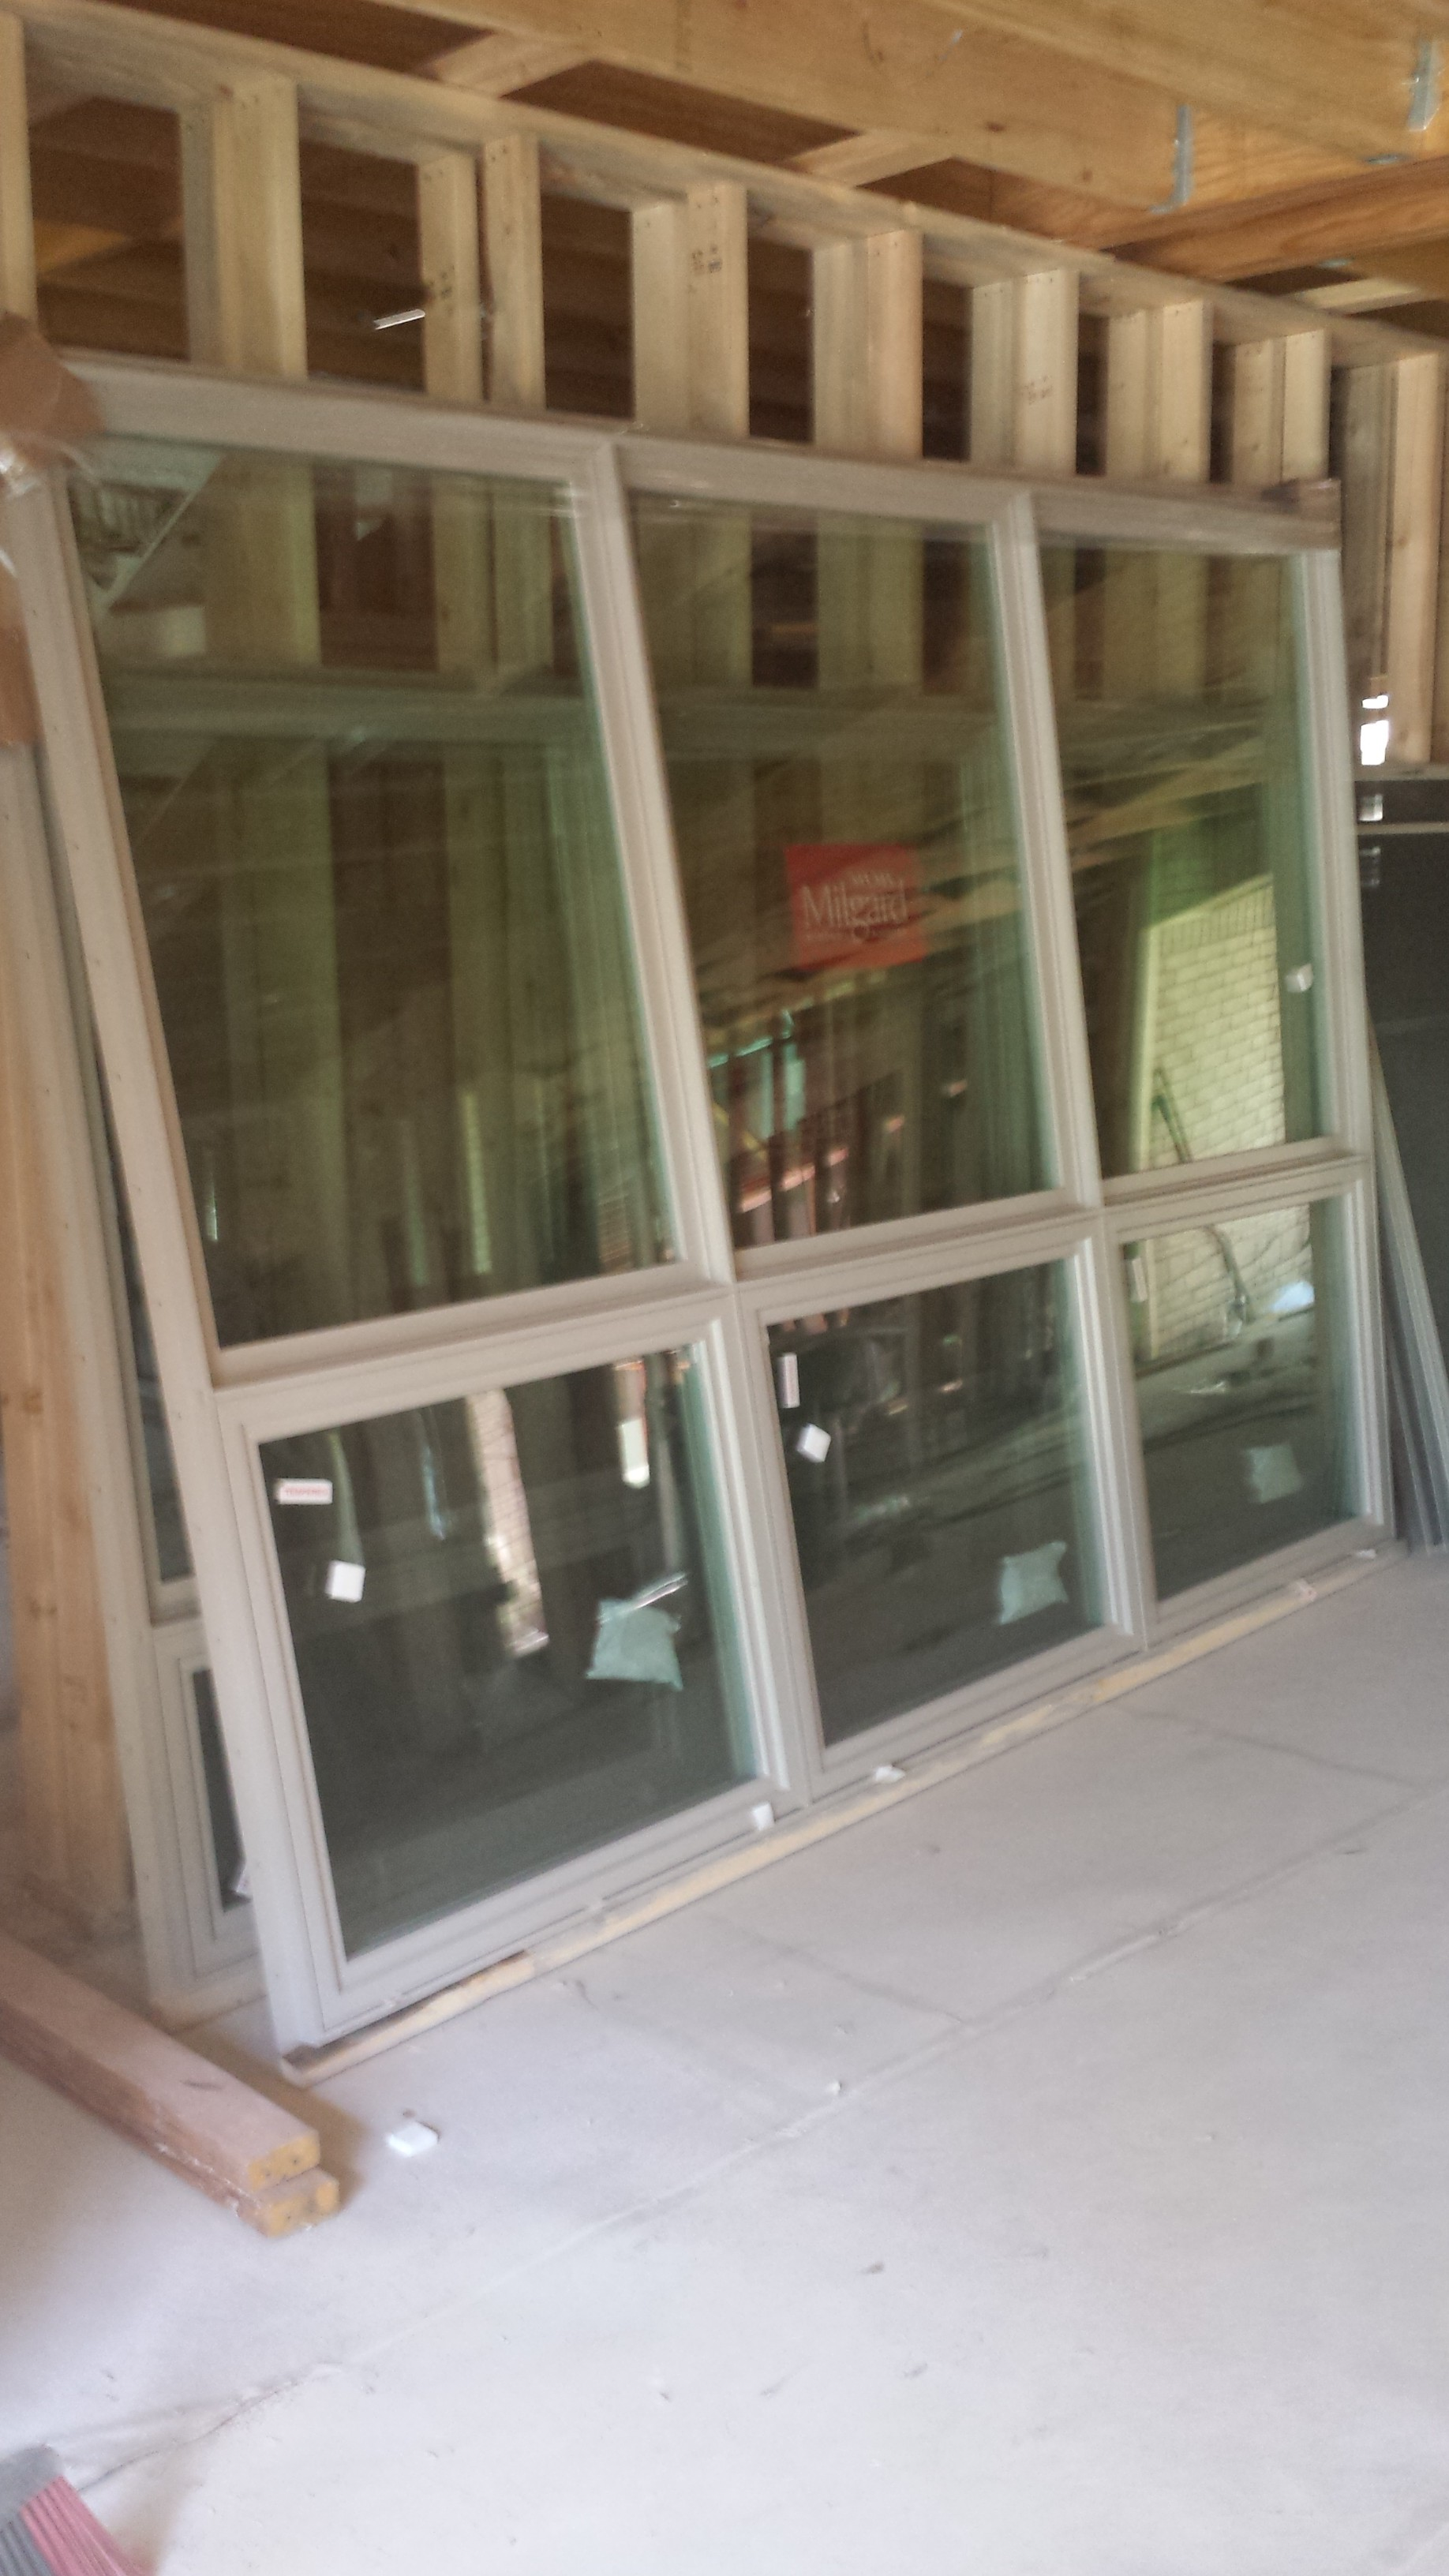 The front windows for the library/dining room.